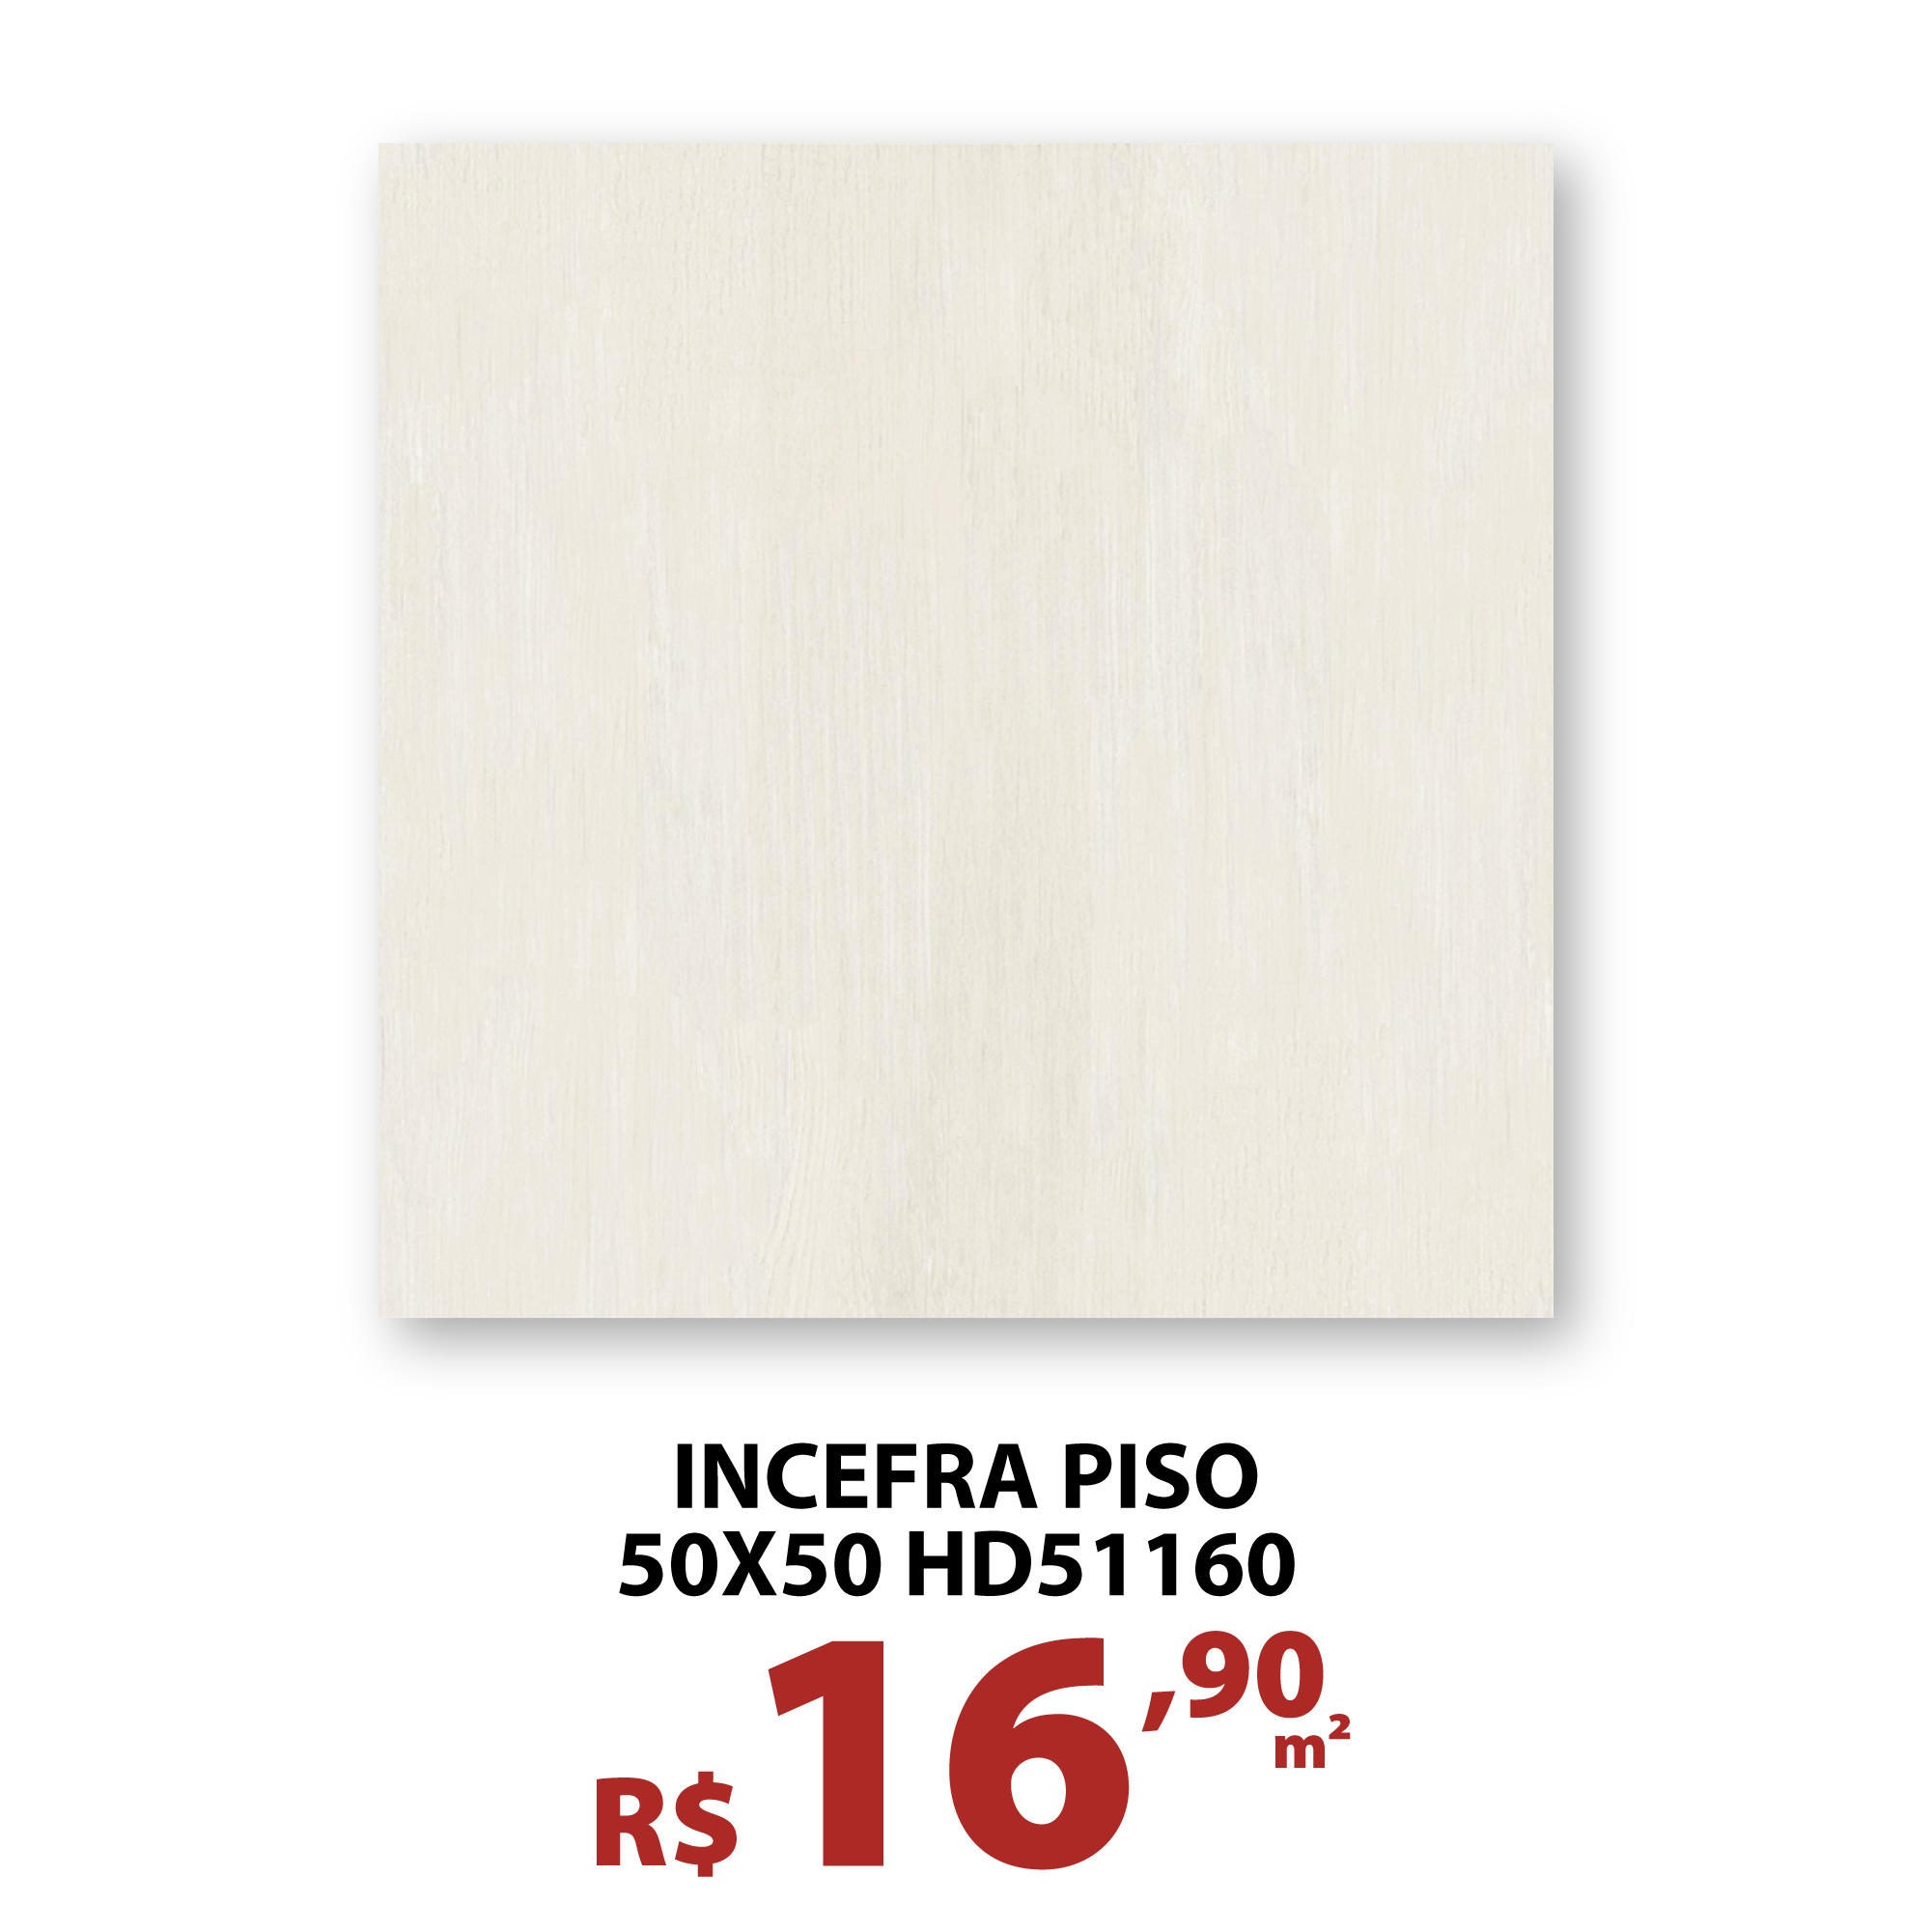 INCEFRA PISO 50X50 HD51160